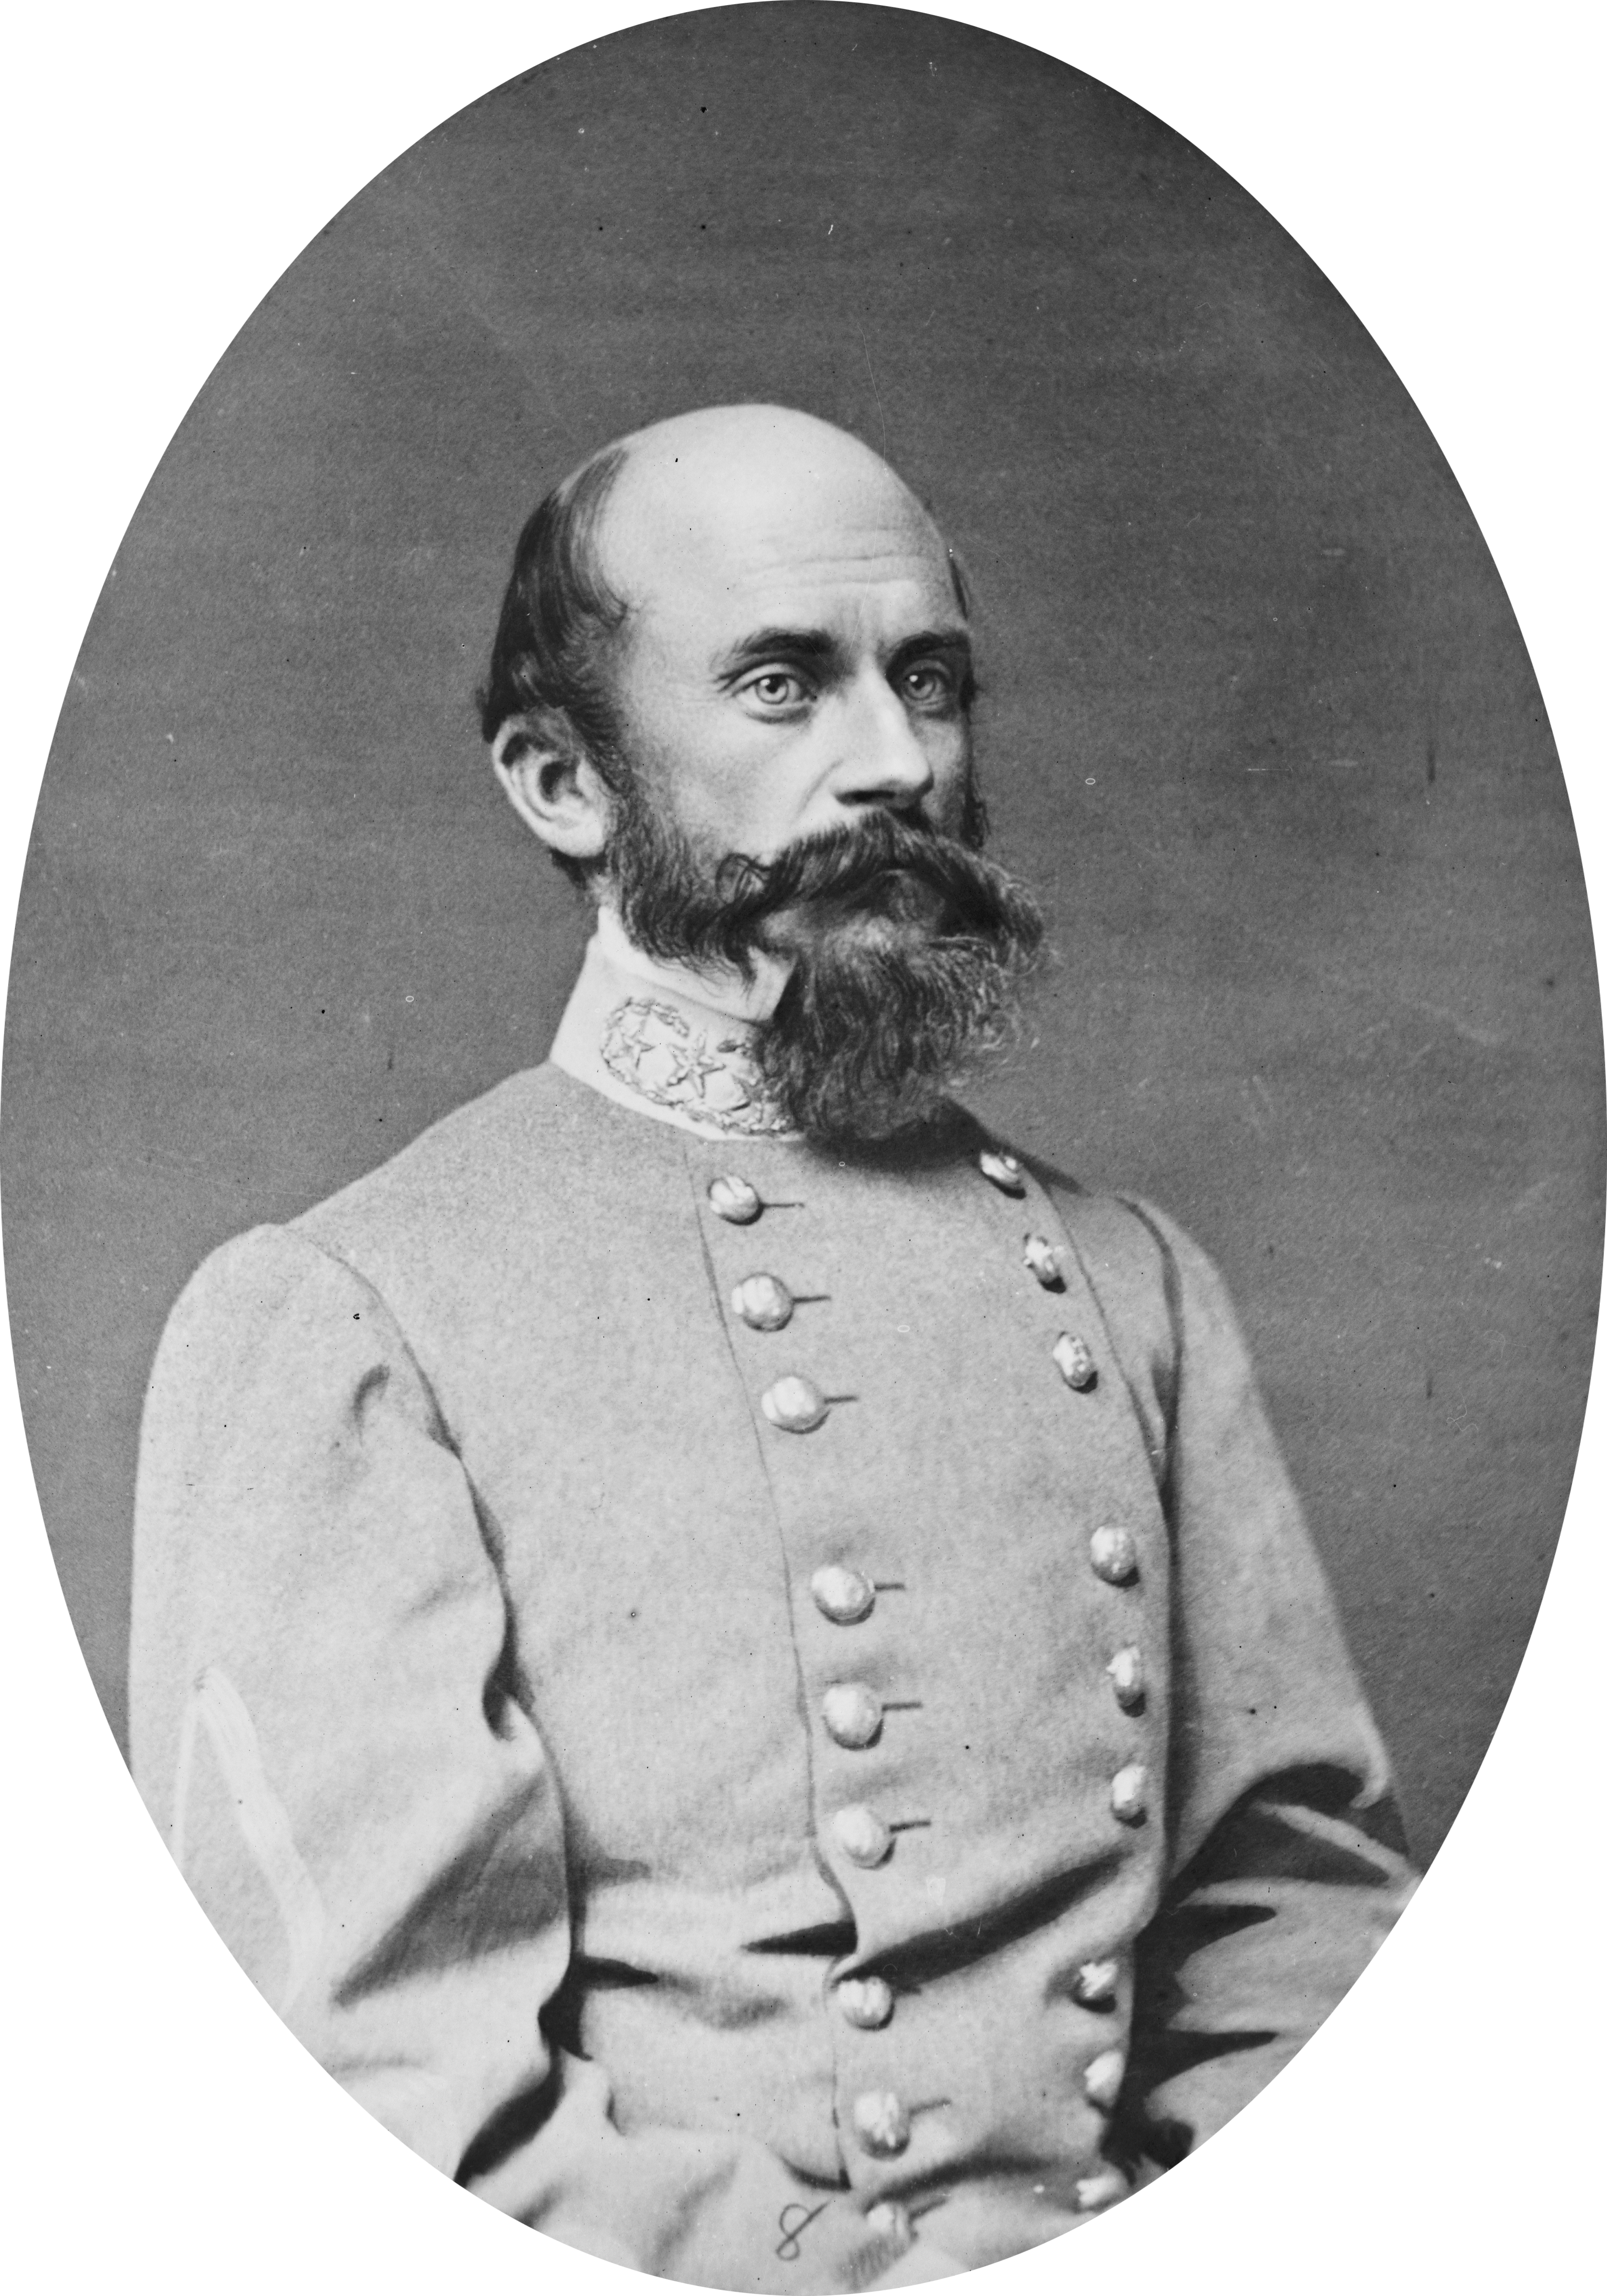 a biography of stonewall jackson a confederate general in the united states Home forums  war of the rebellion forums  civil war biography forums  erwin rommel came to virginia to study stonewall jackson i found this post looking for .